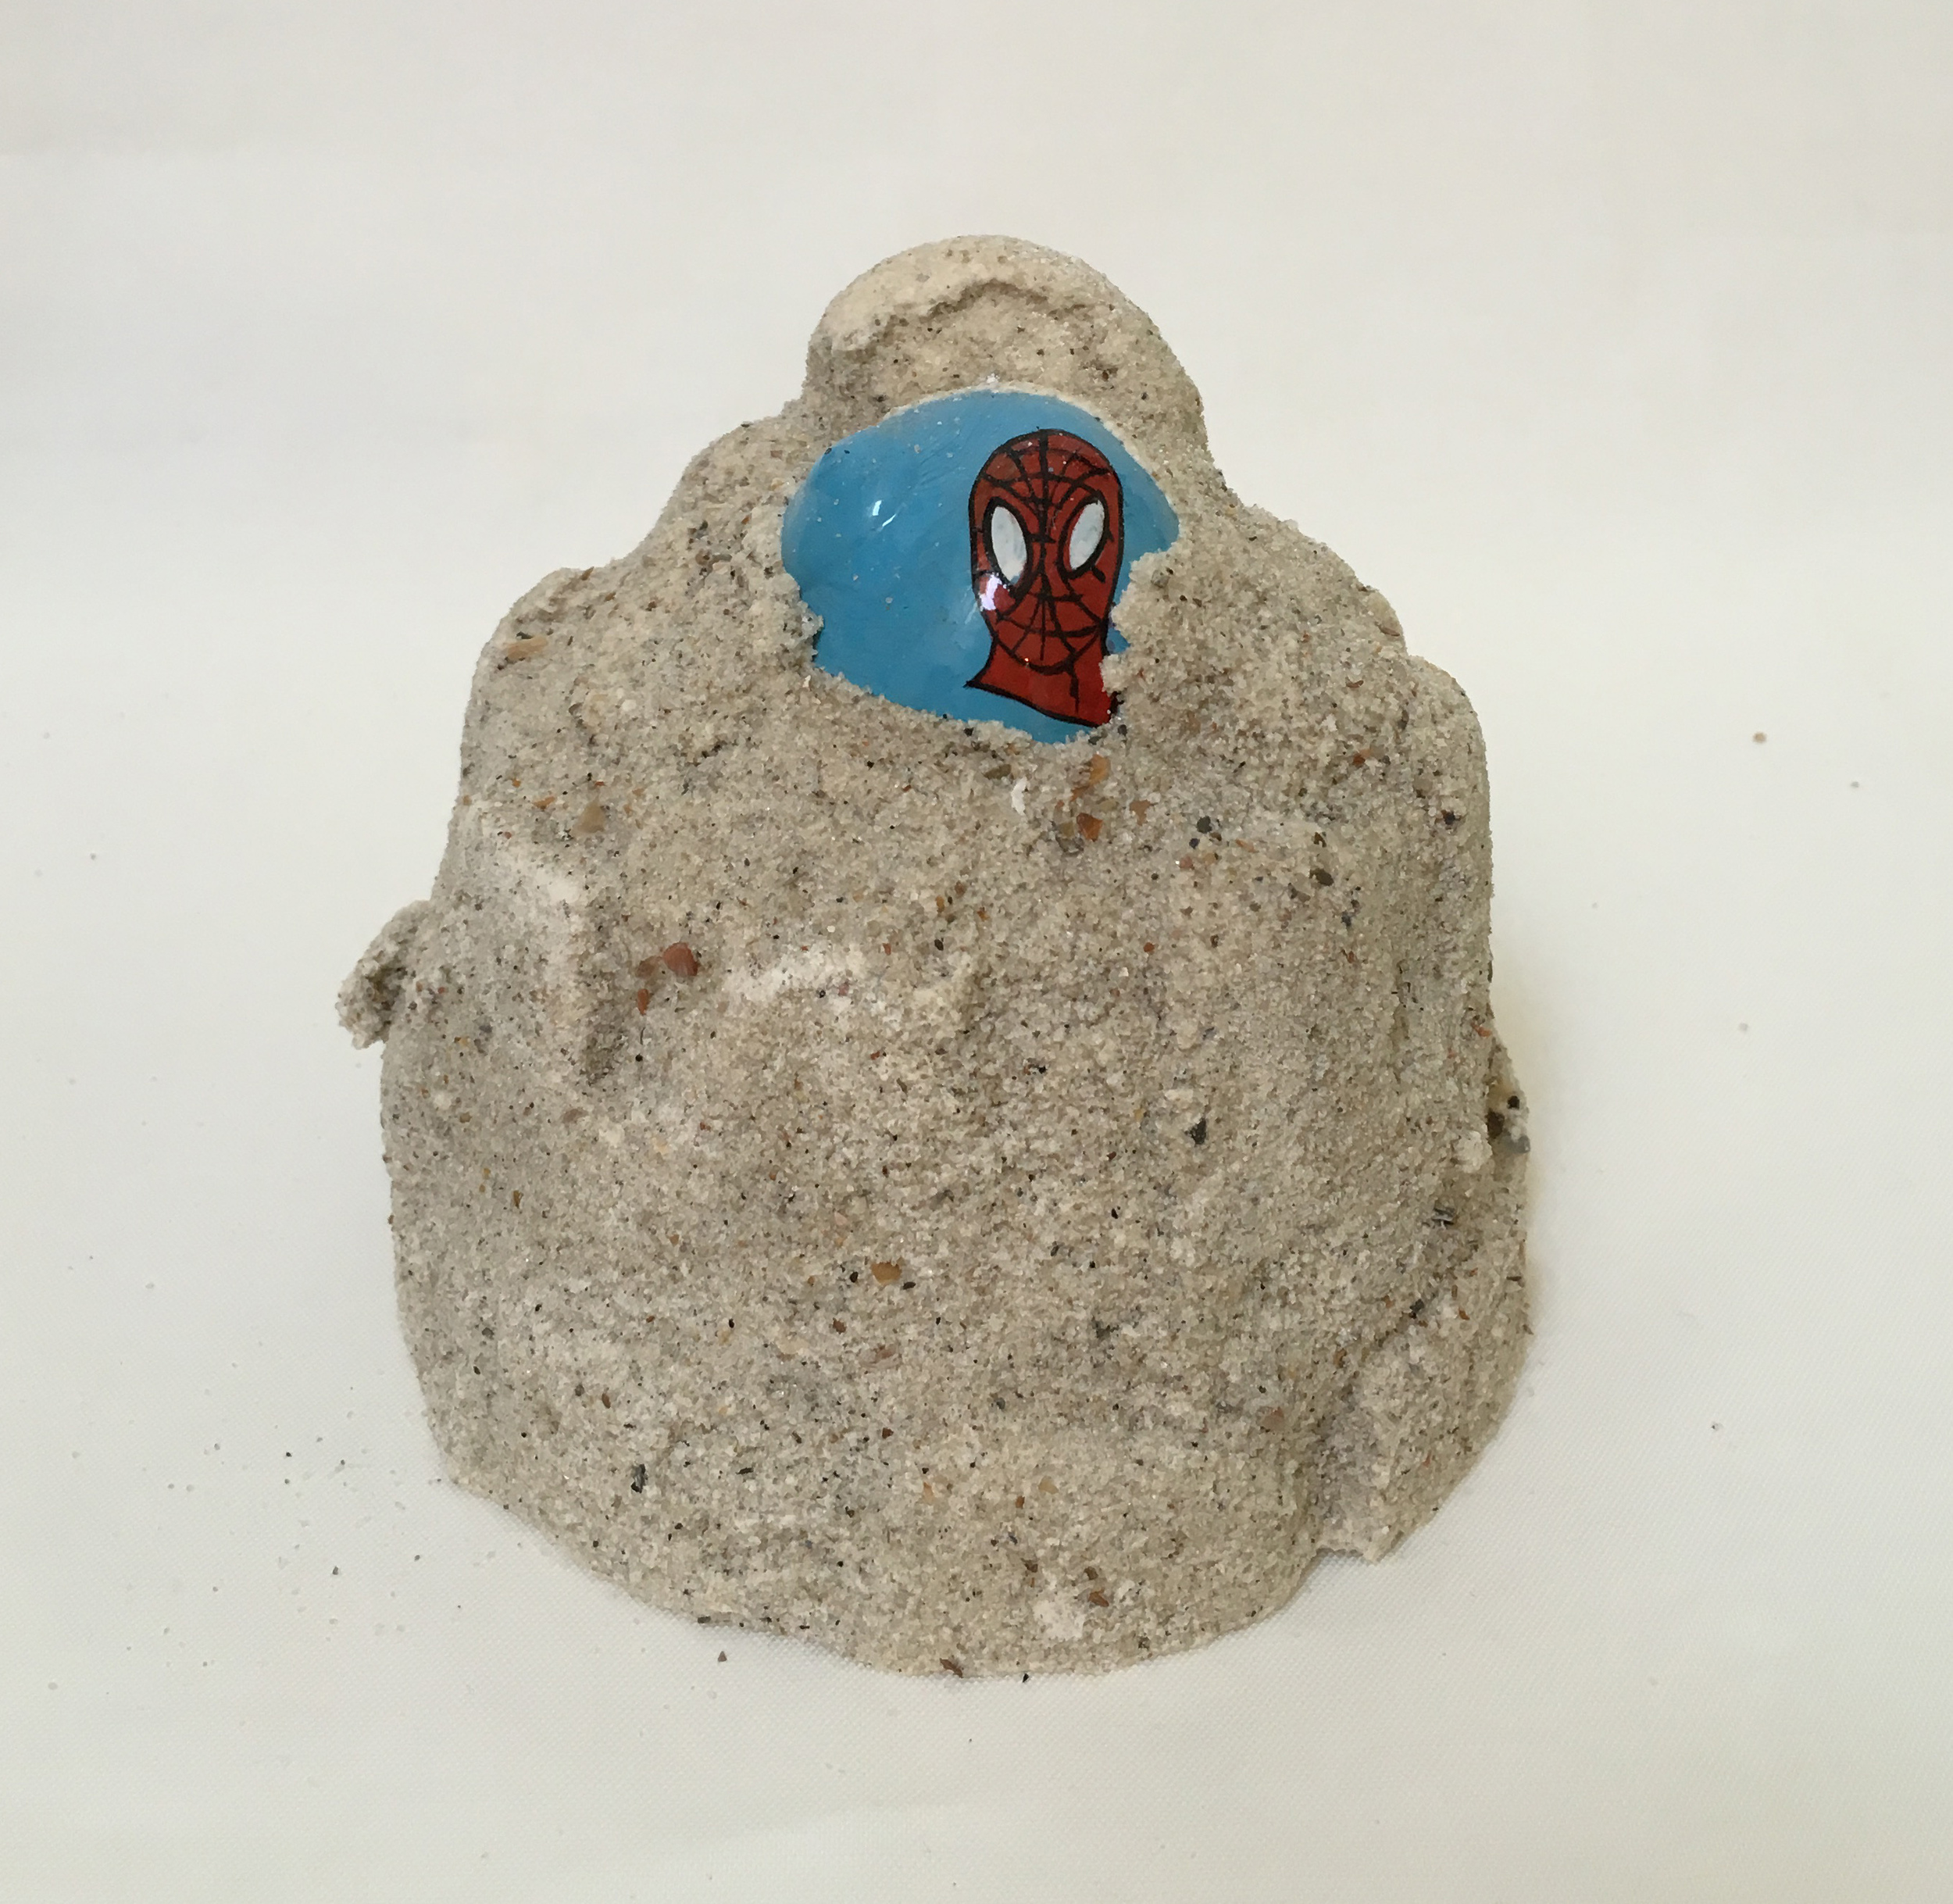 Untitled (Hermit-Man Remains)  , 2015 3.5 x 3.5 x 5 inches hand painted hermit crab shells, plaster, and sand